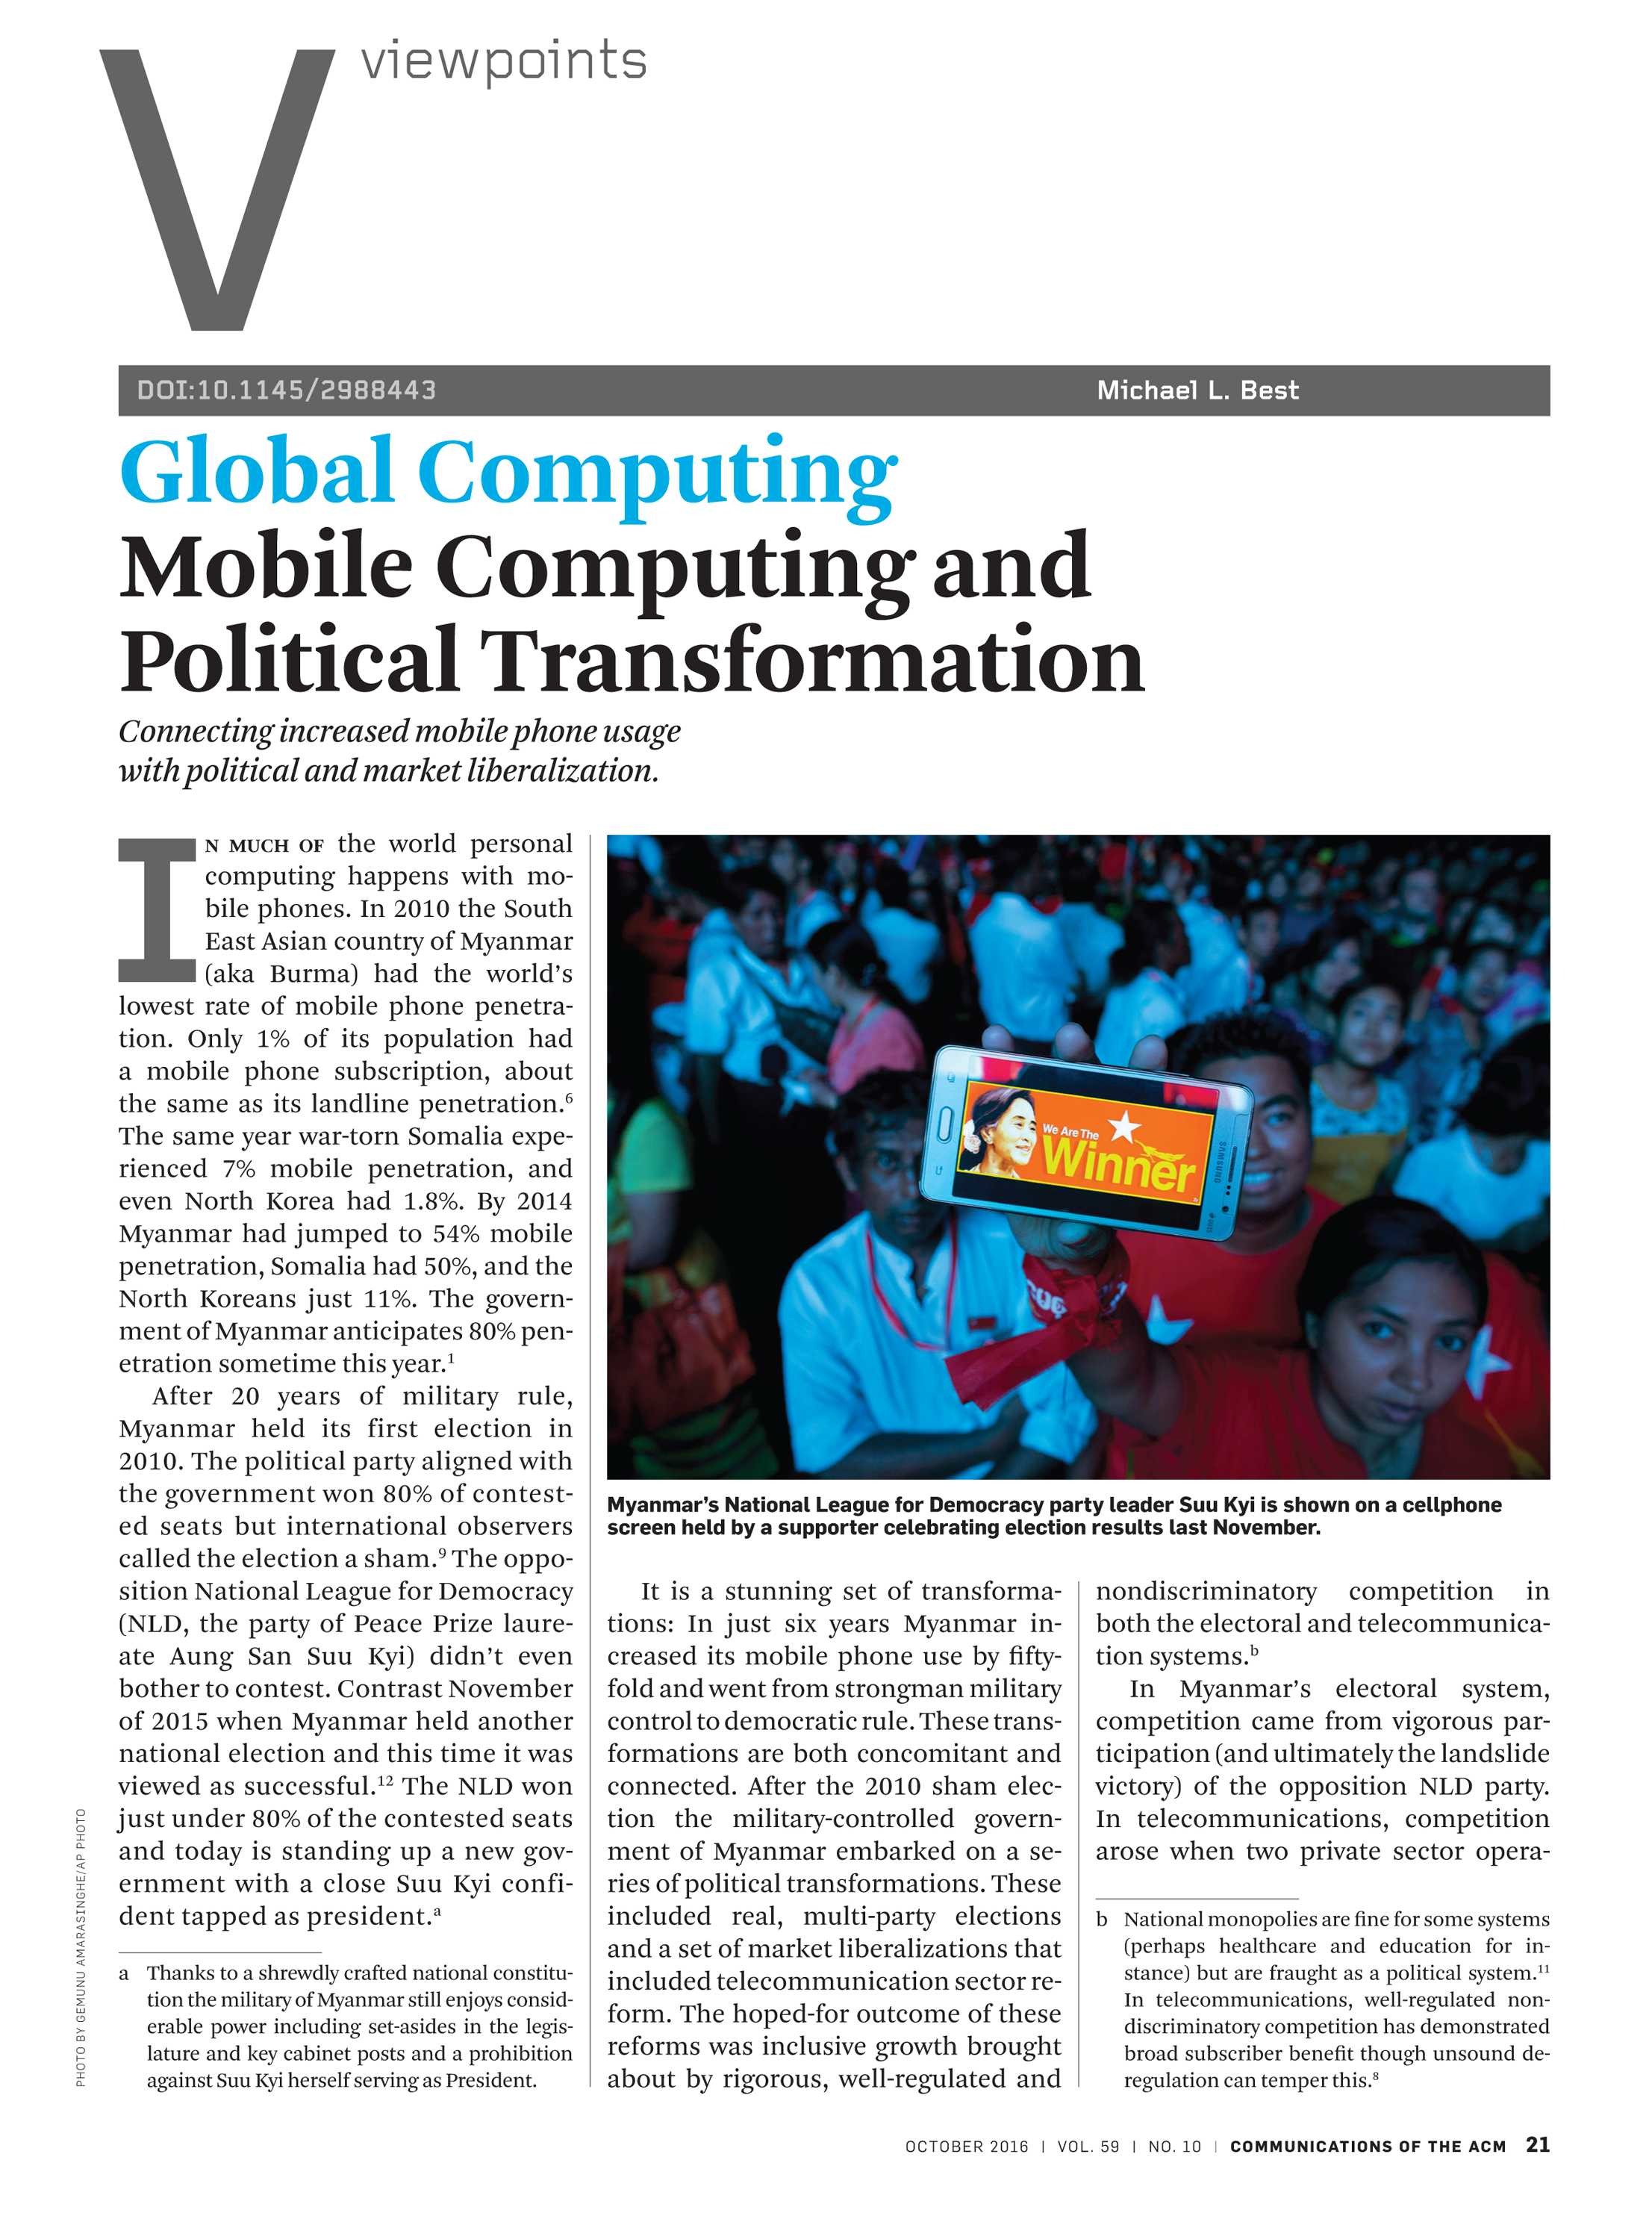 Communications of the ACM - October 2016 - page 21